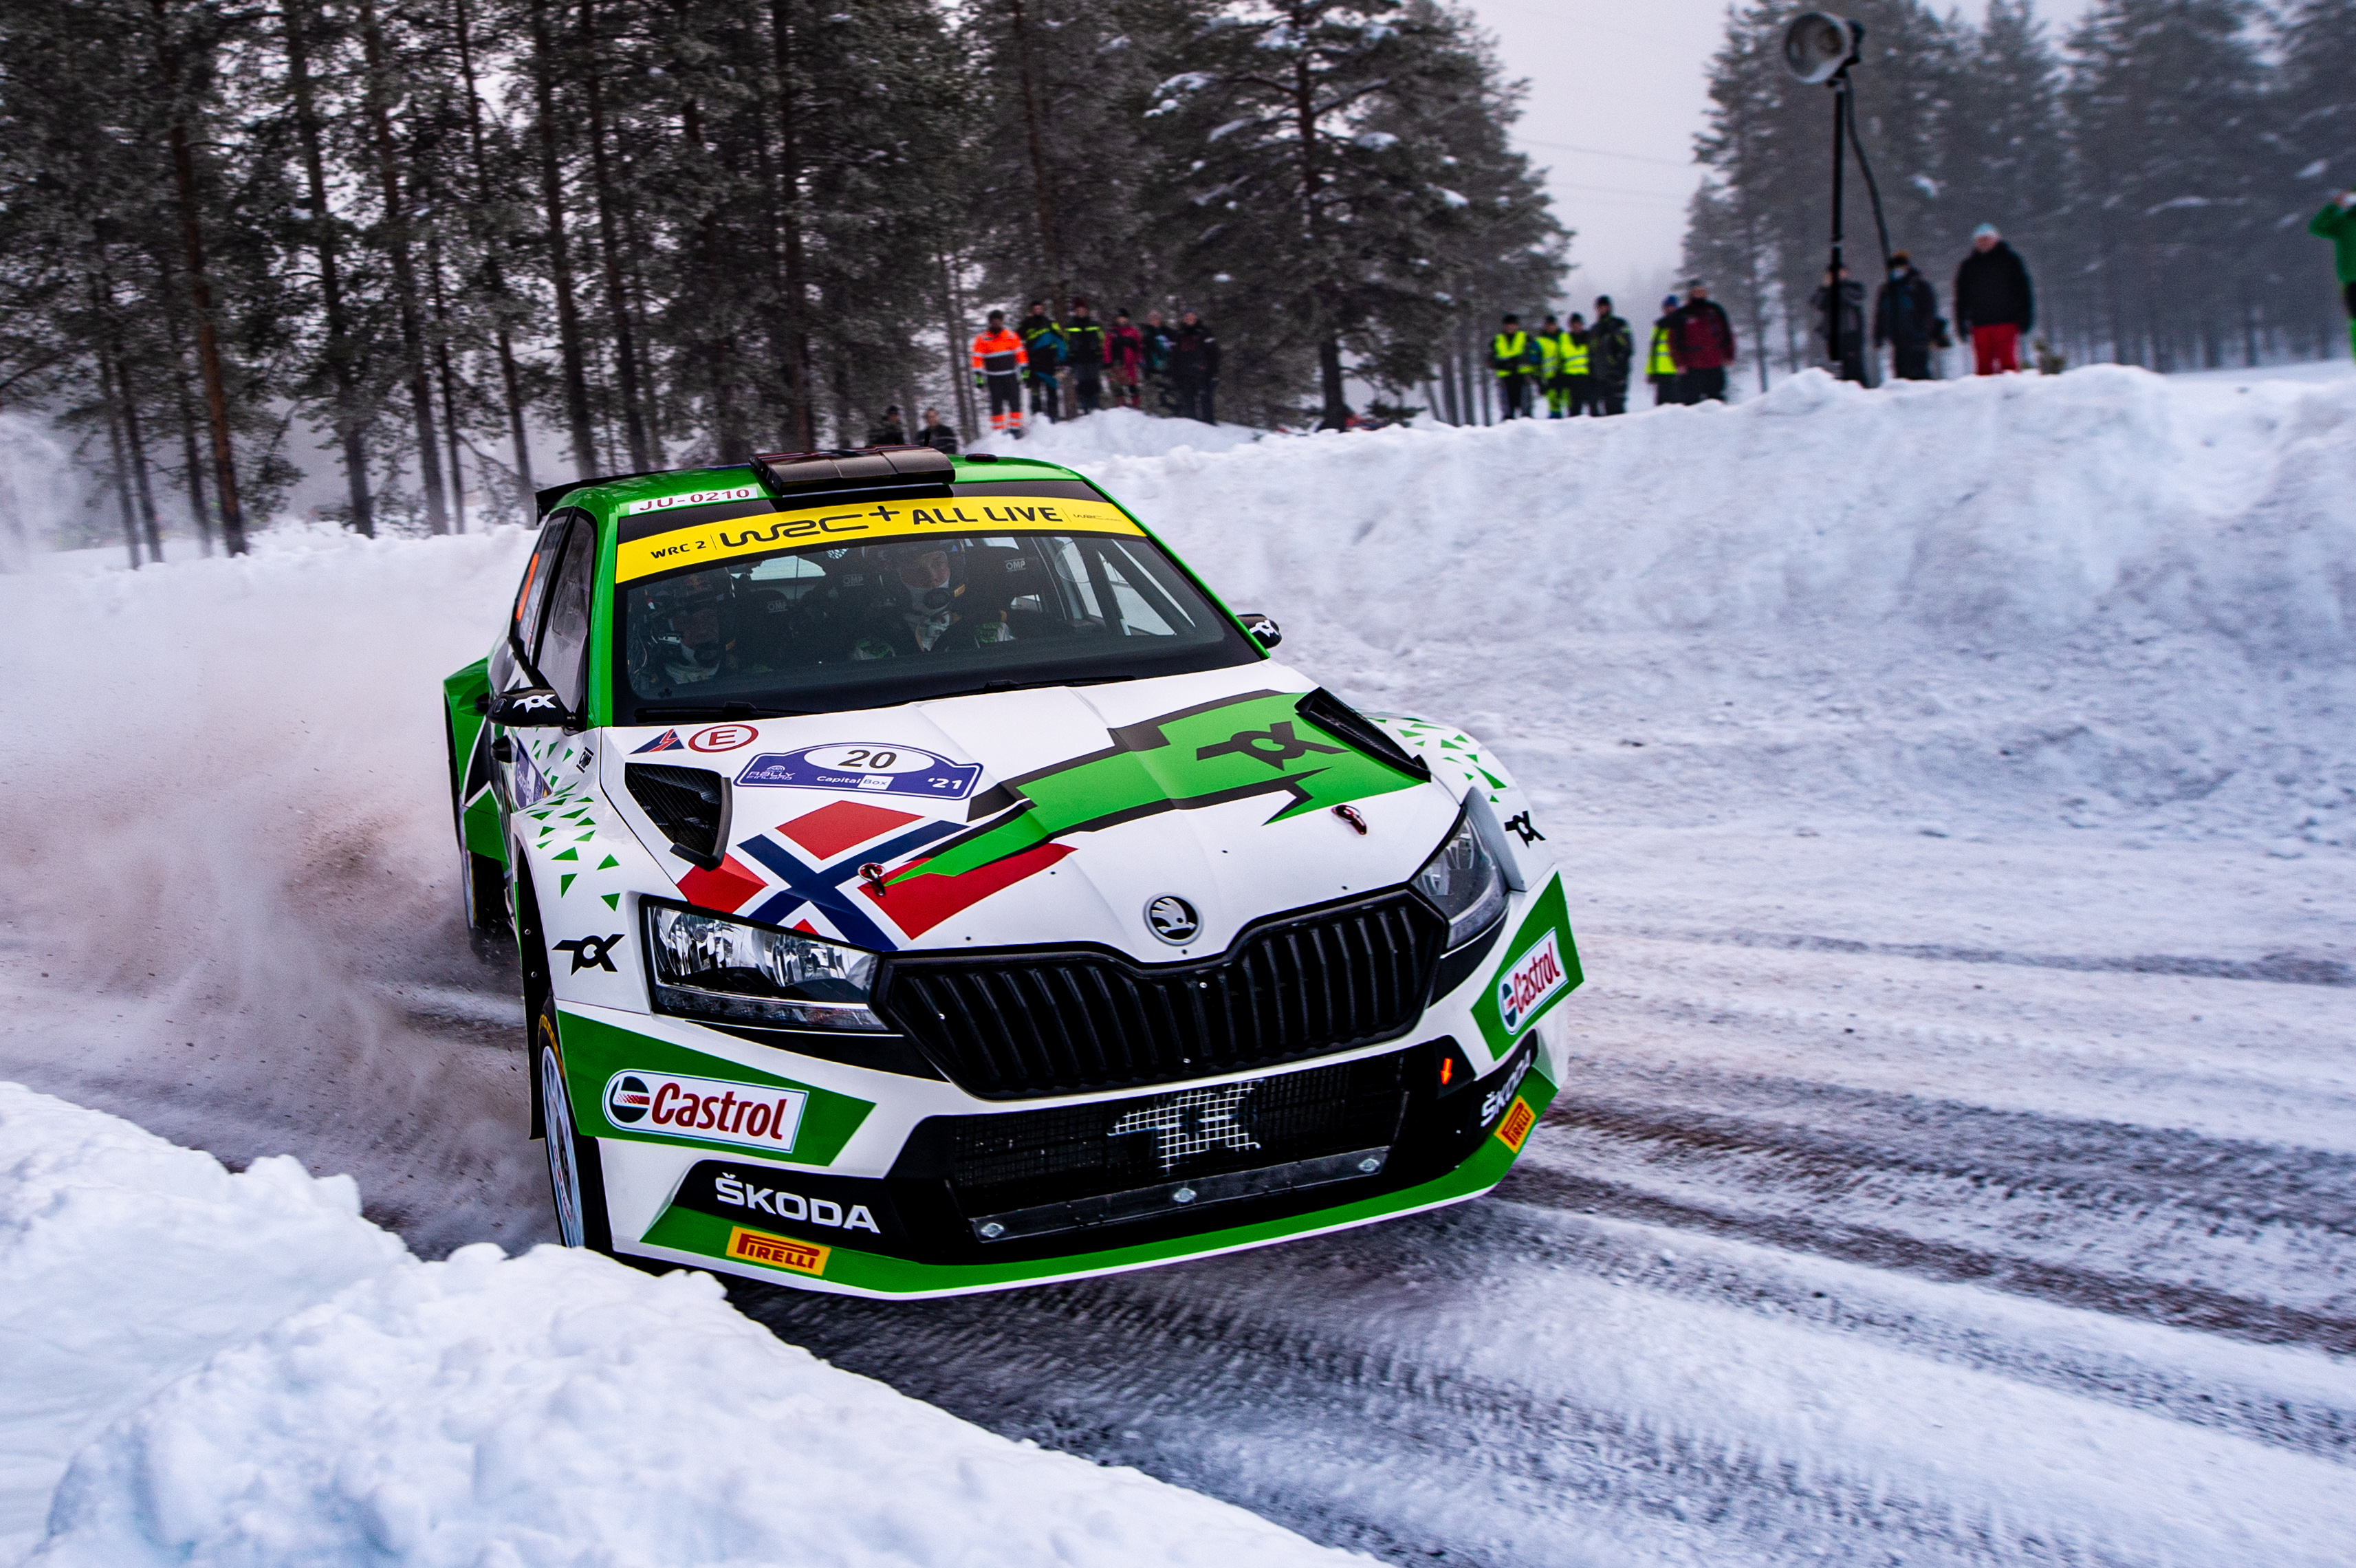 Arctic Rally Finland: SKODA Motorsport supported Andreas Mikkelsen finishes Friday leg third in WRC2 - Image 6